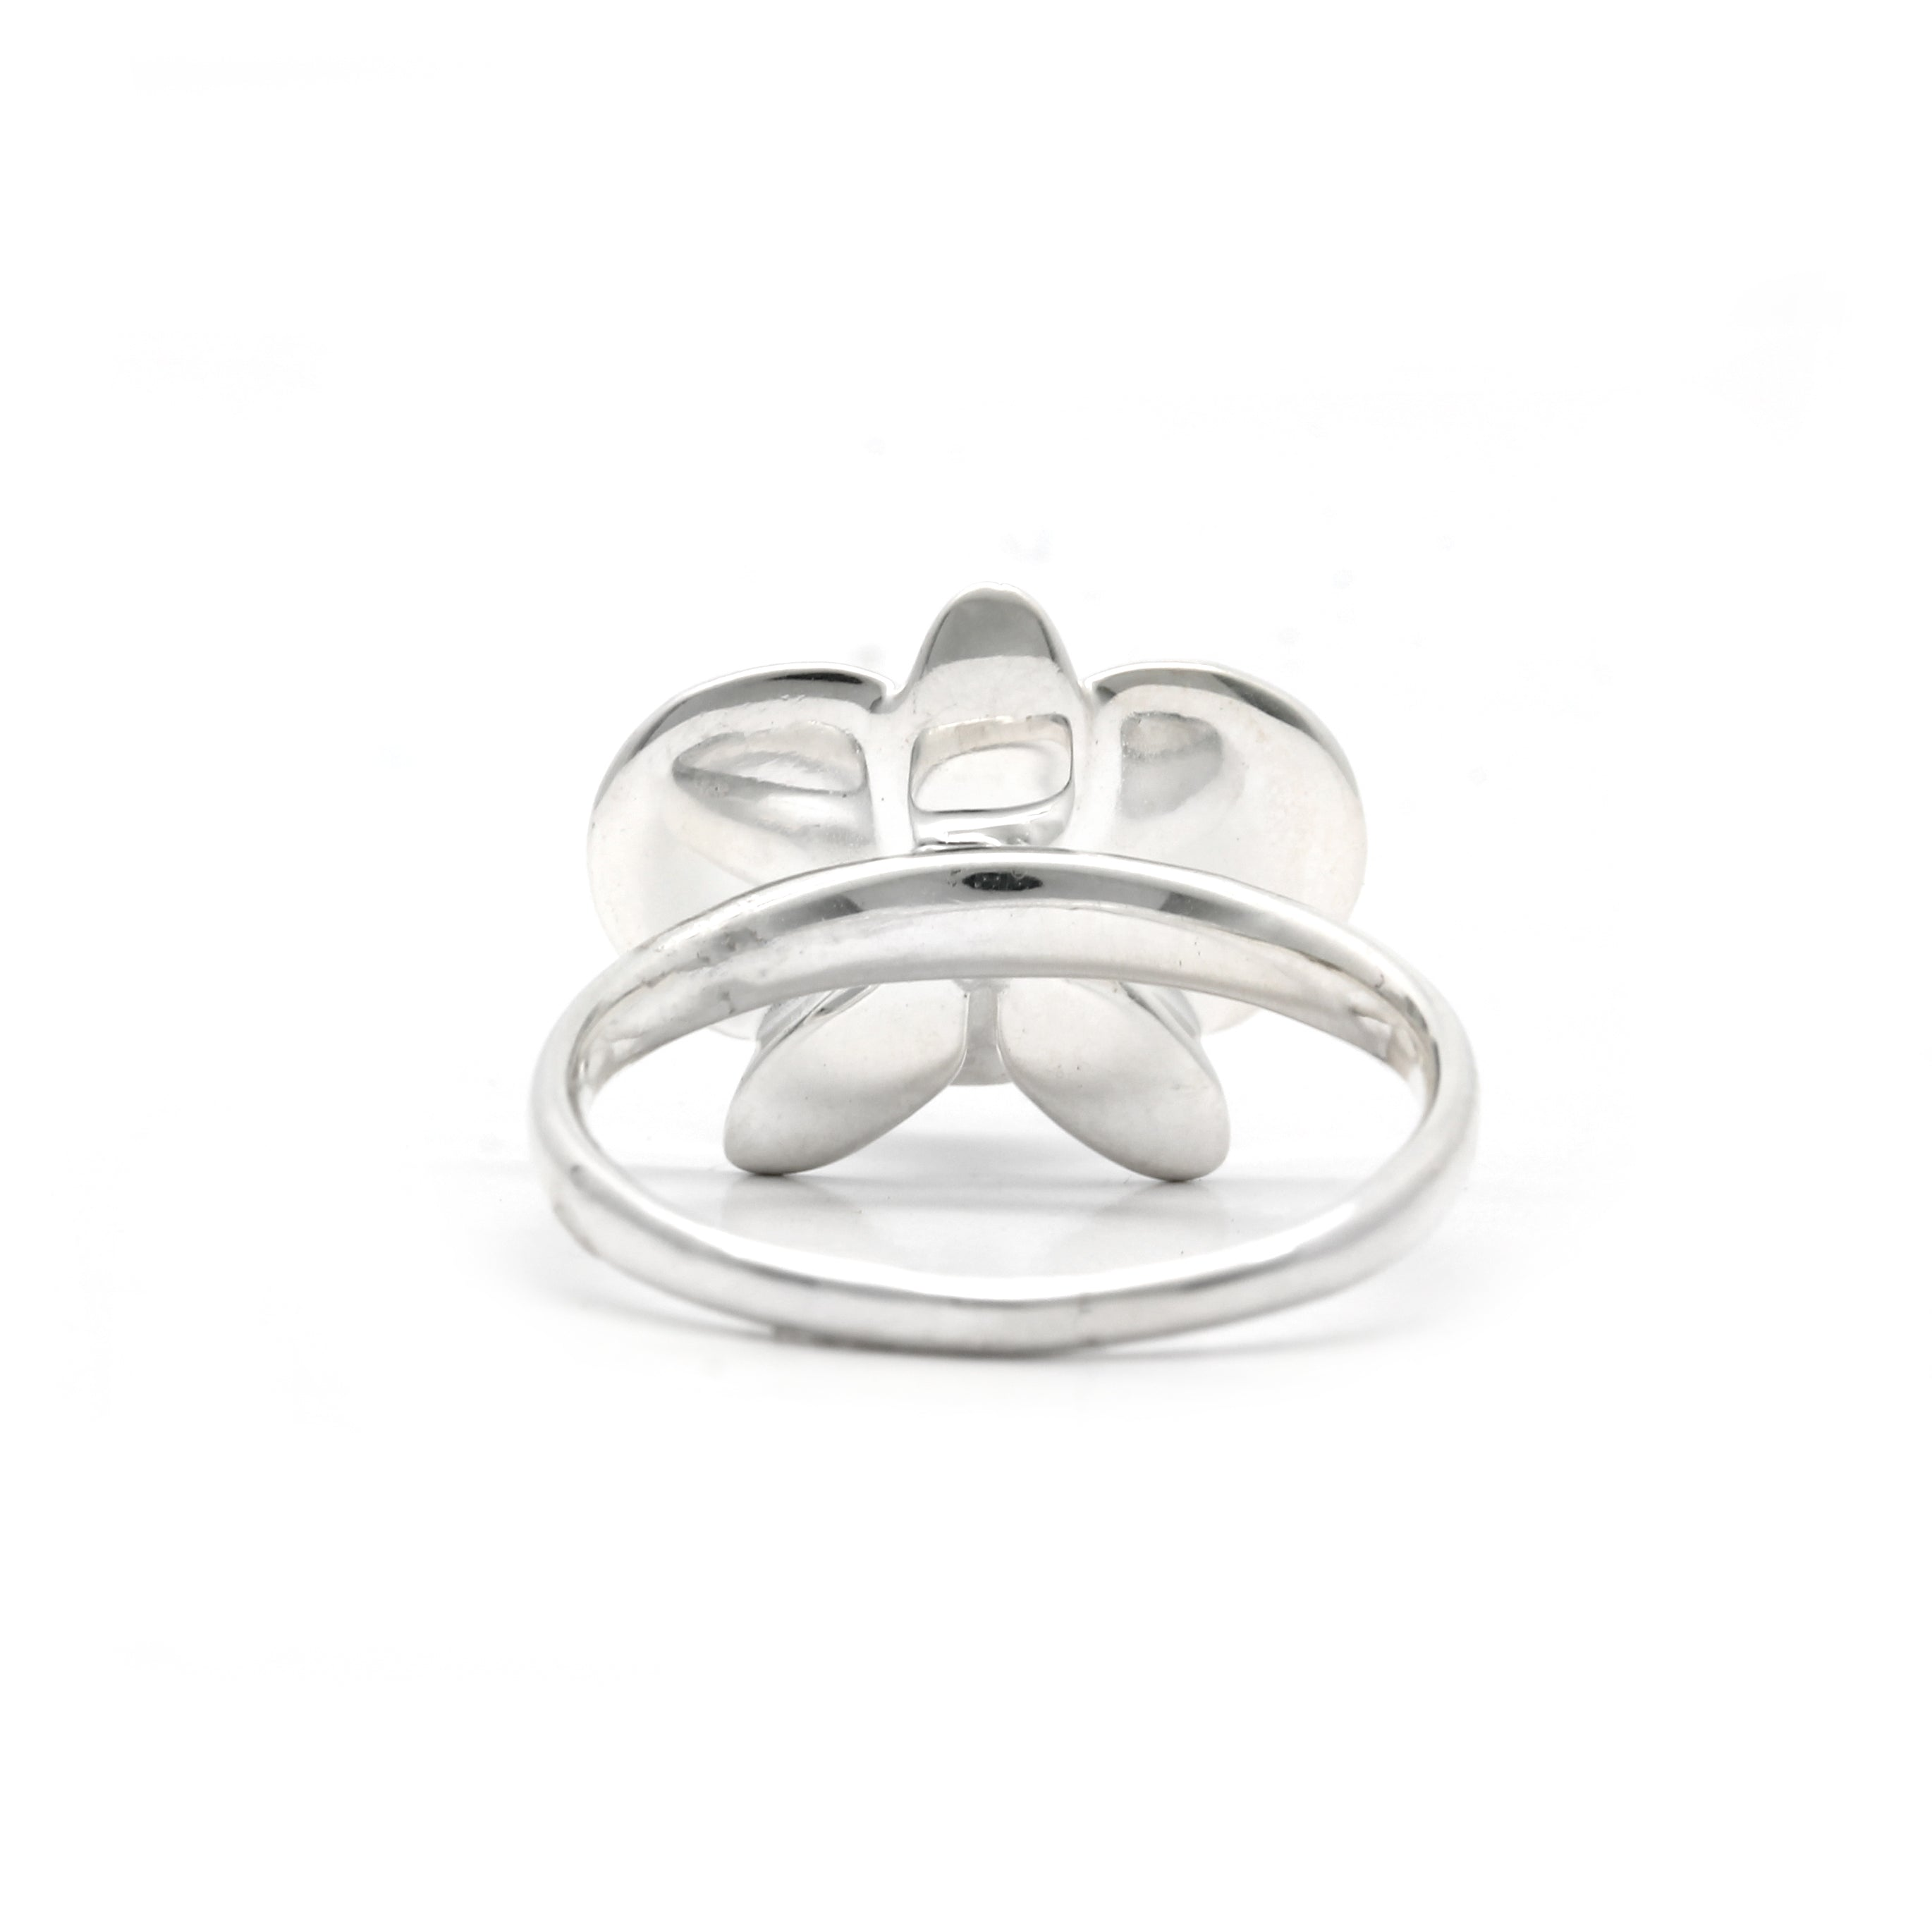 ORCHID: Silver Ring with Keshi Cortez Pearls